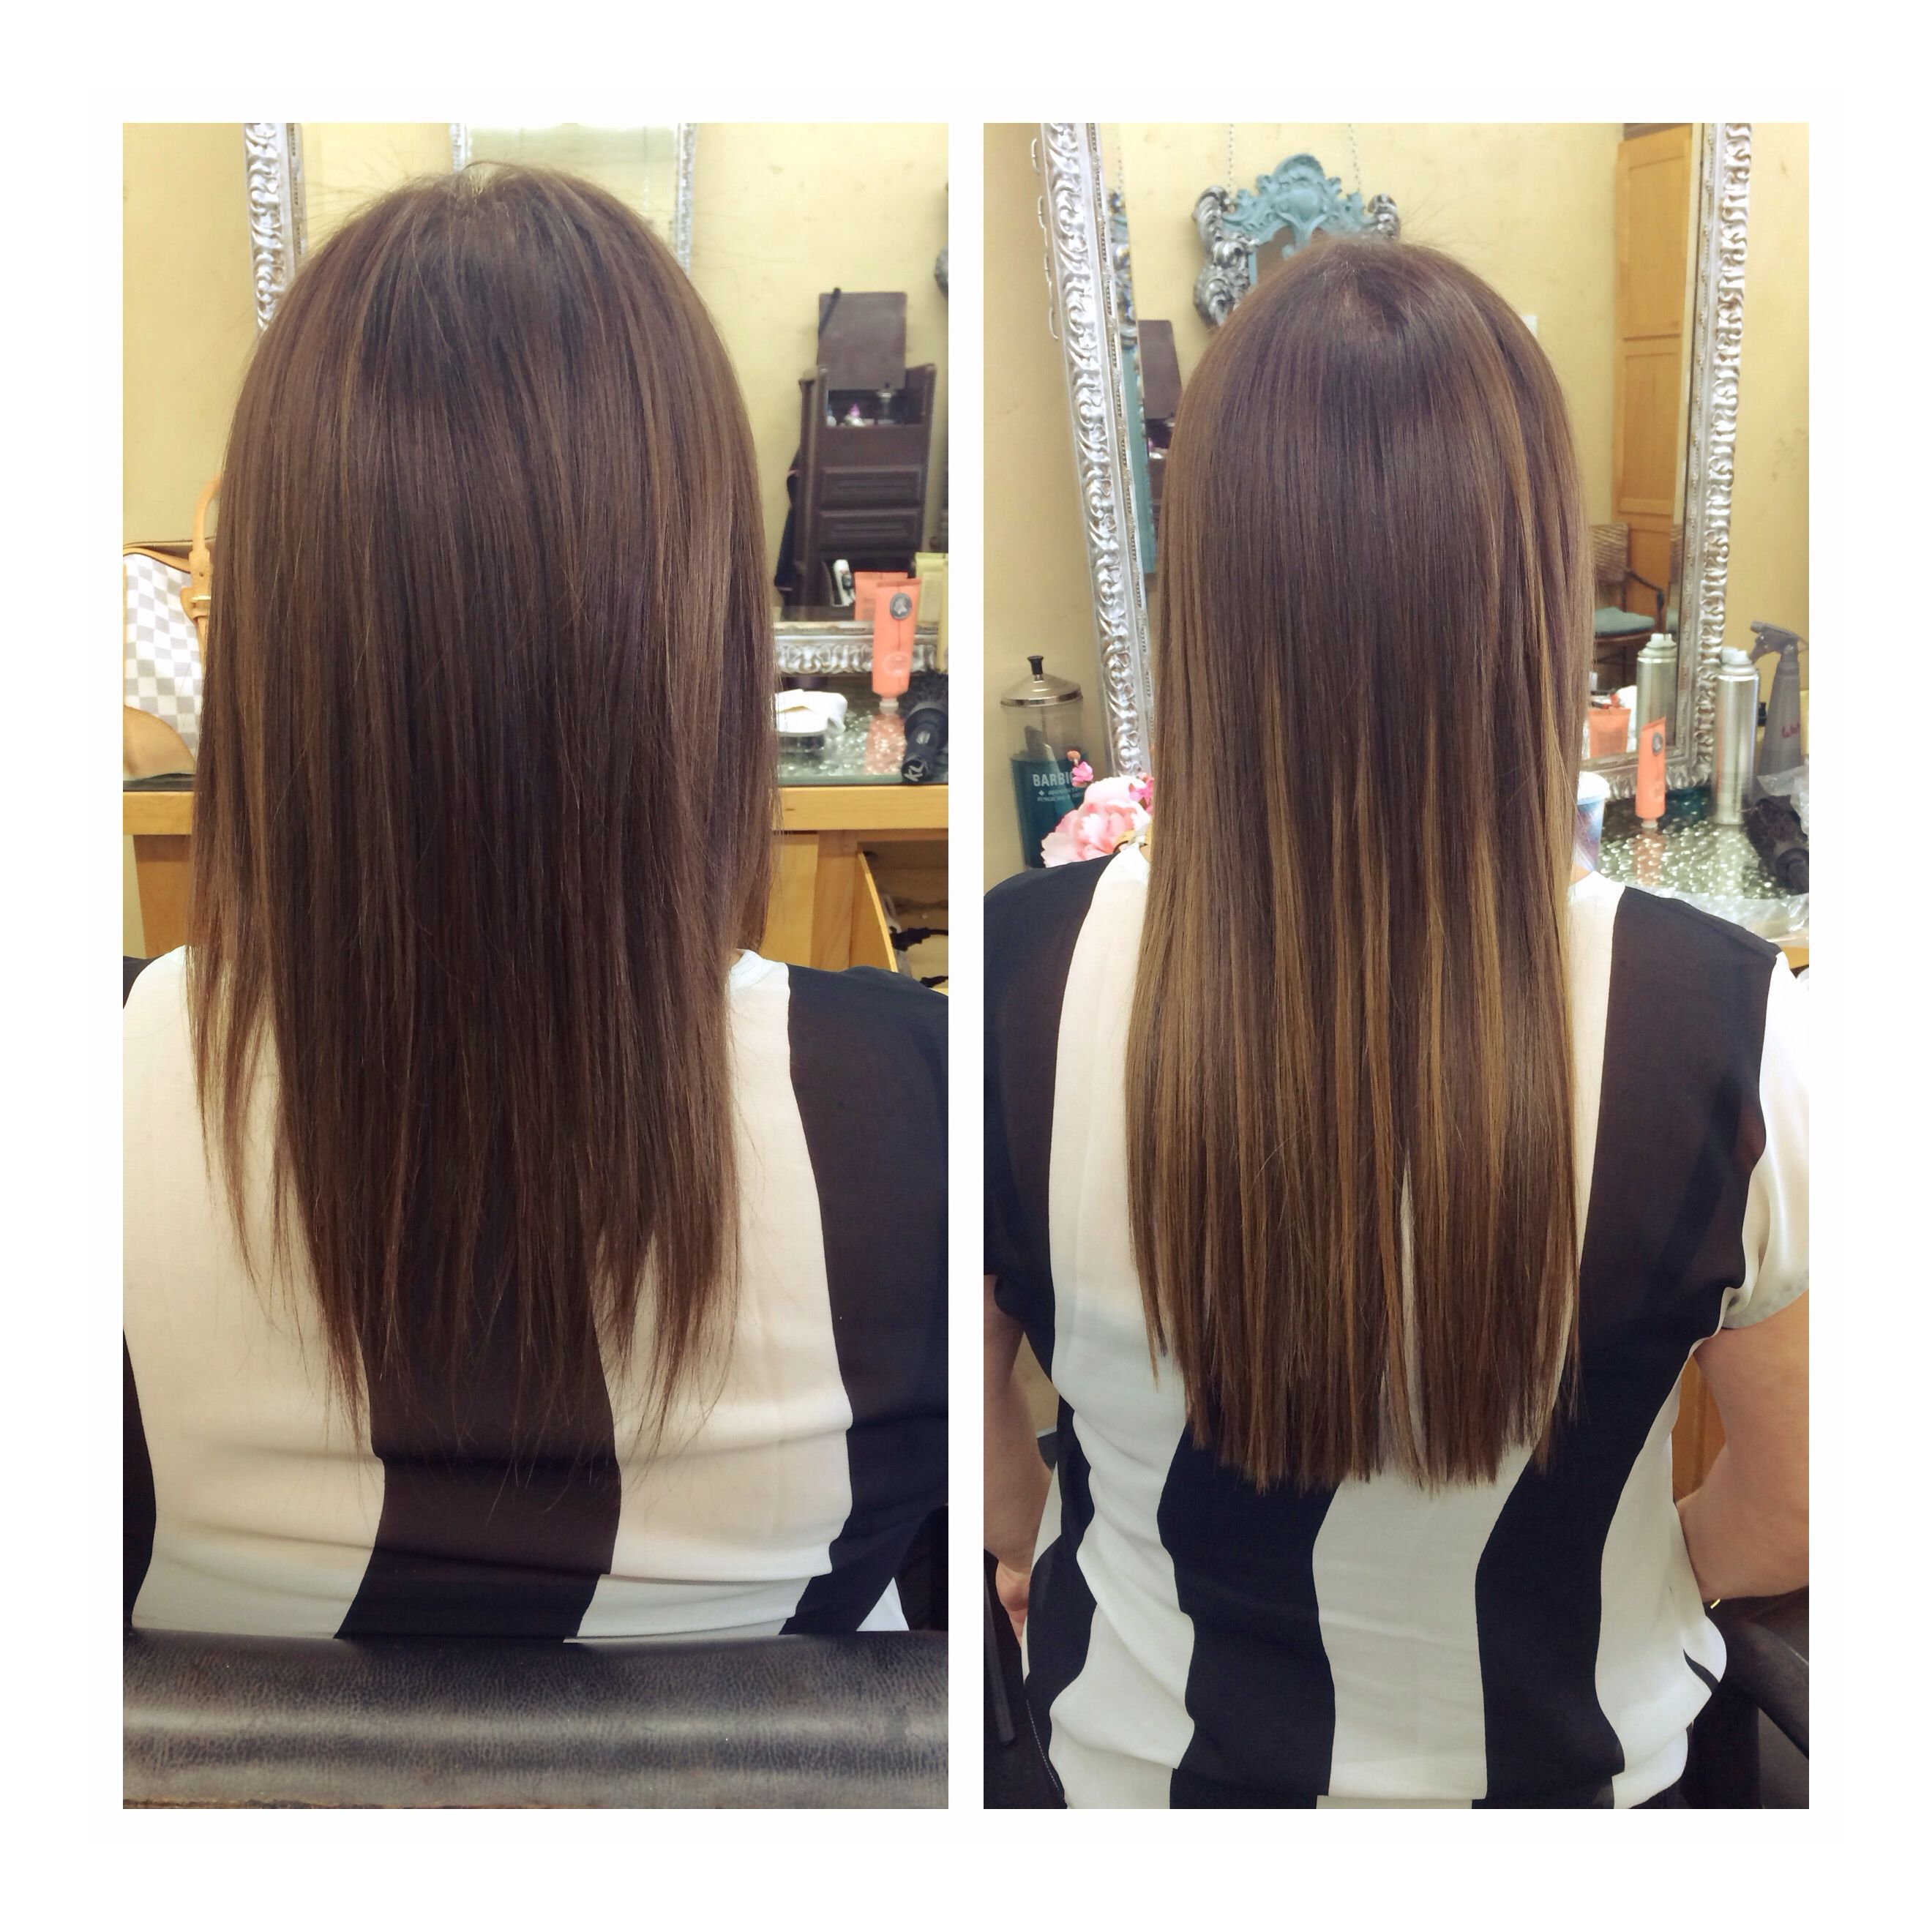 Before And After 16 Inch Extensions Hair Styles Long Hair Styles Beauty